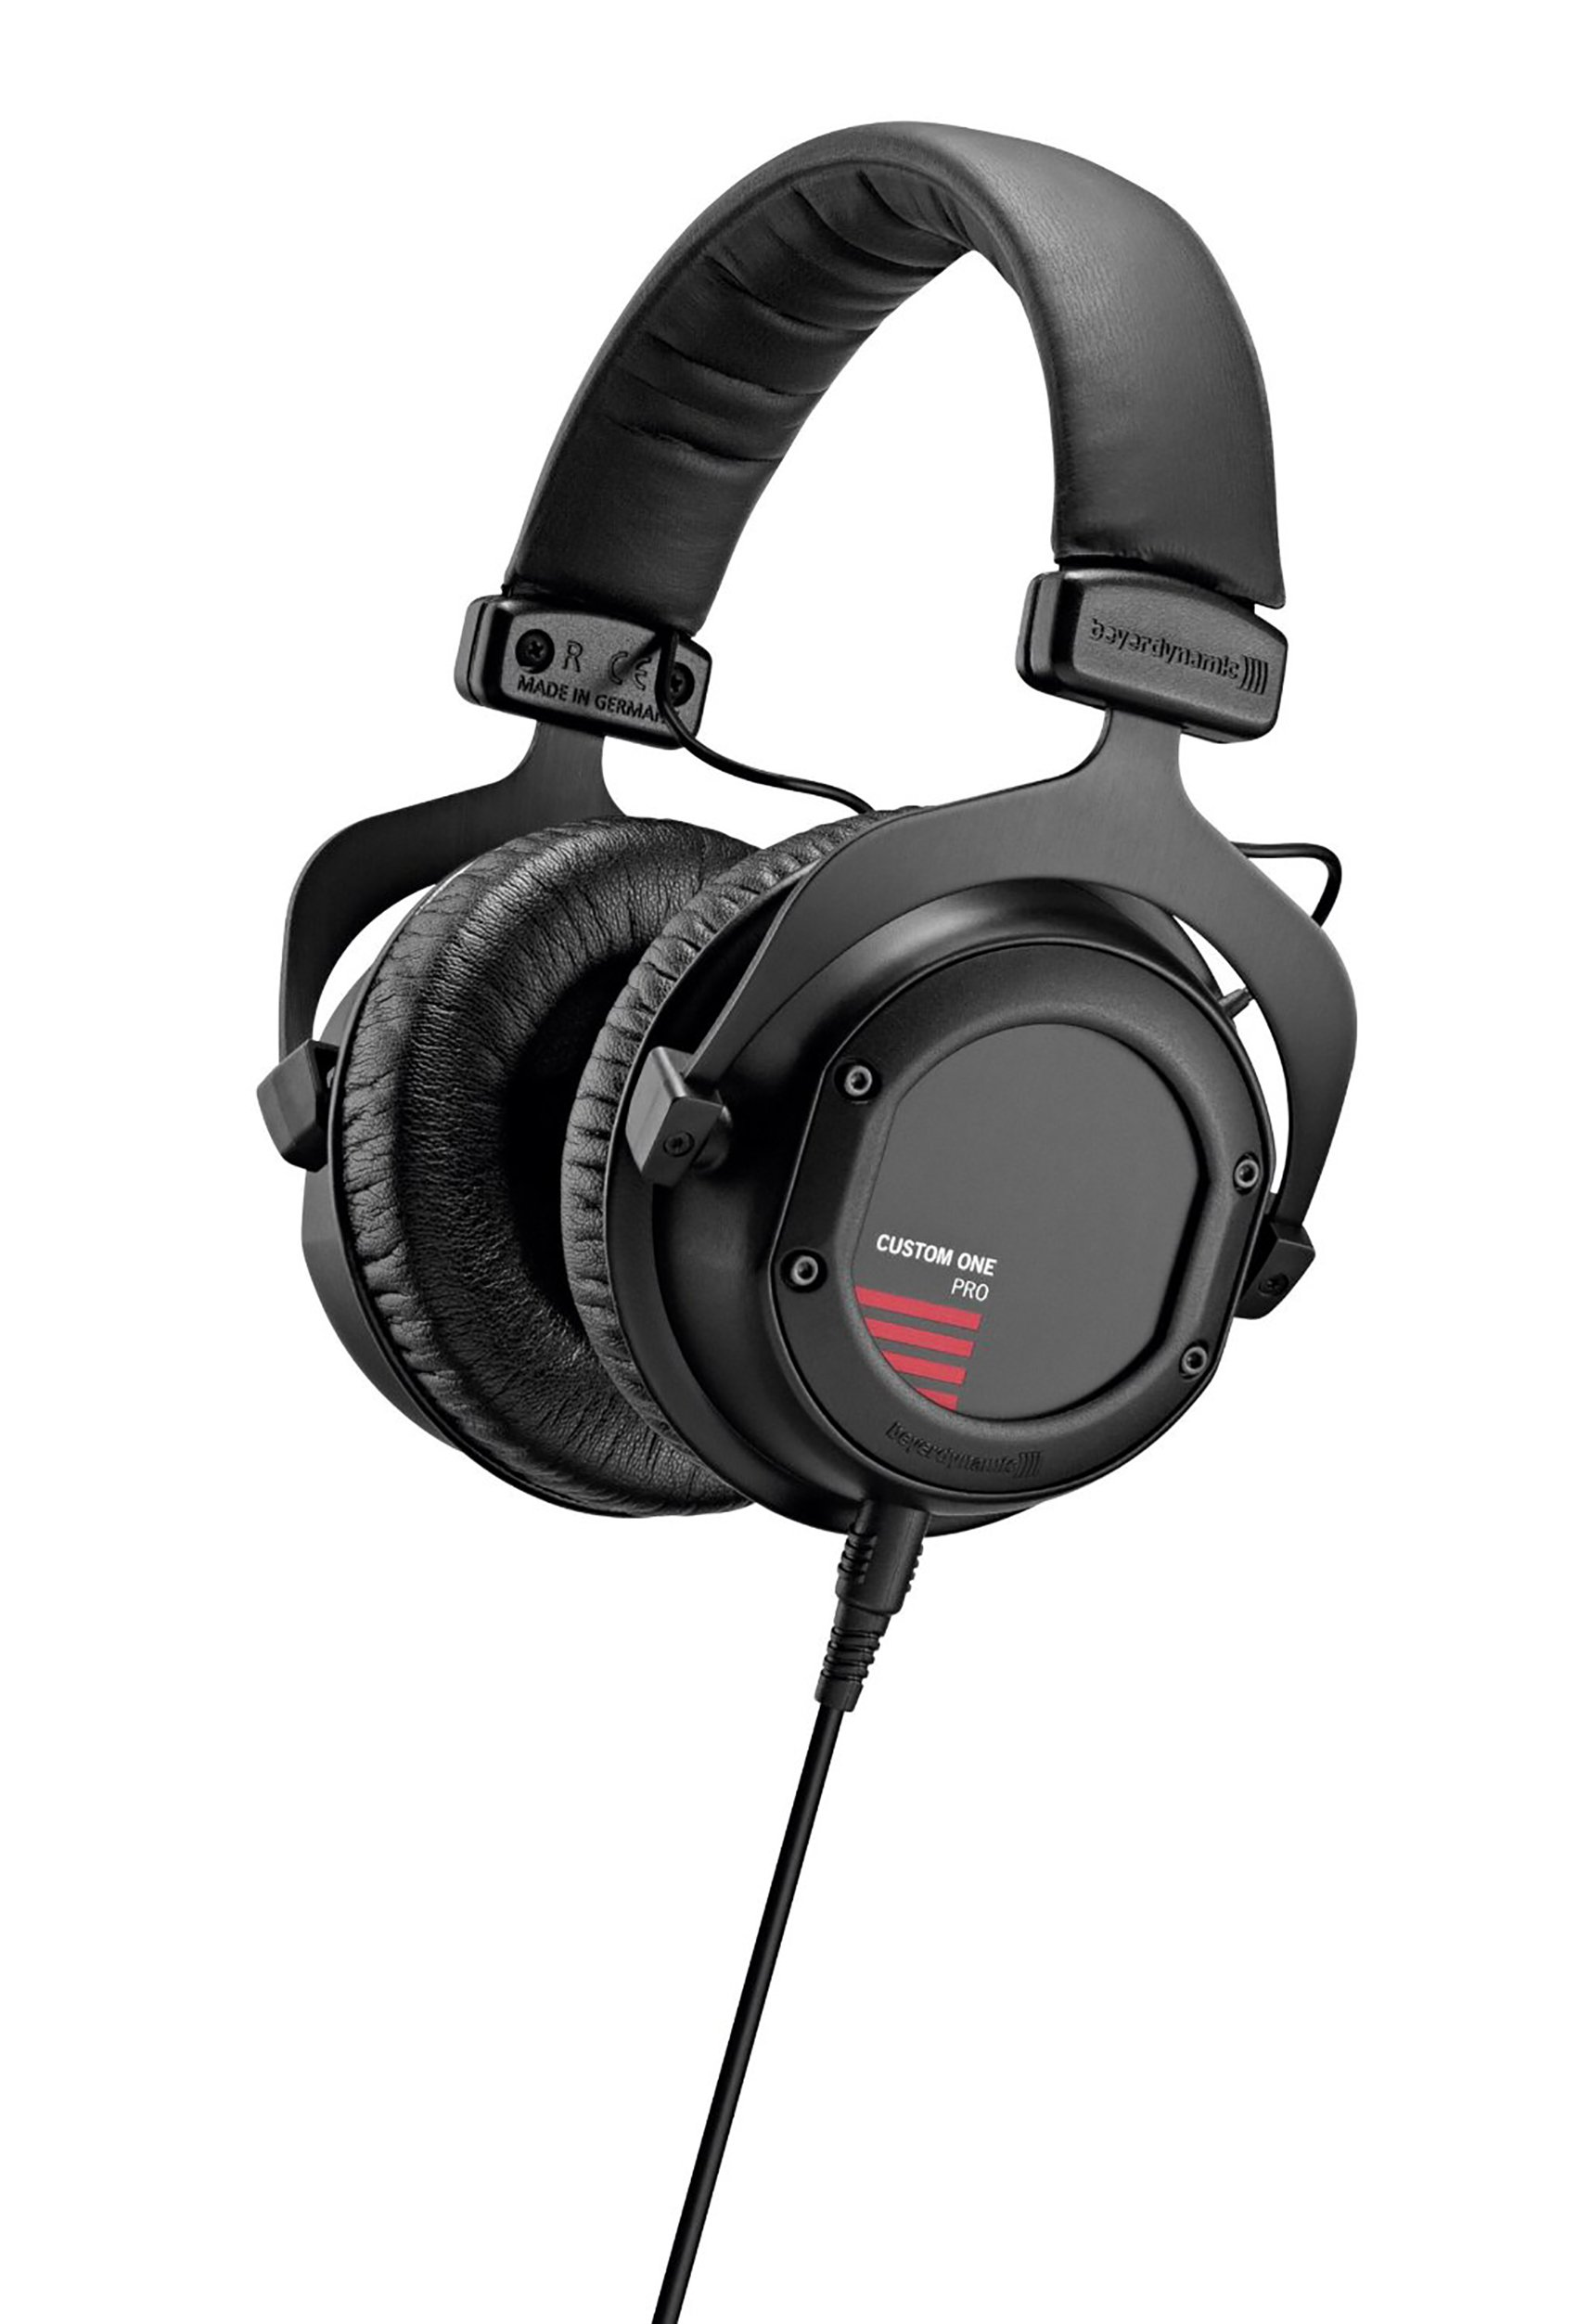 beyerdynamic Custom One Pro Plus Headphones with Accessory Kit and Remote Microphone Cable, Black by beyerdynamic